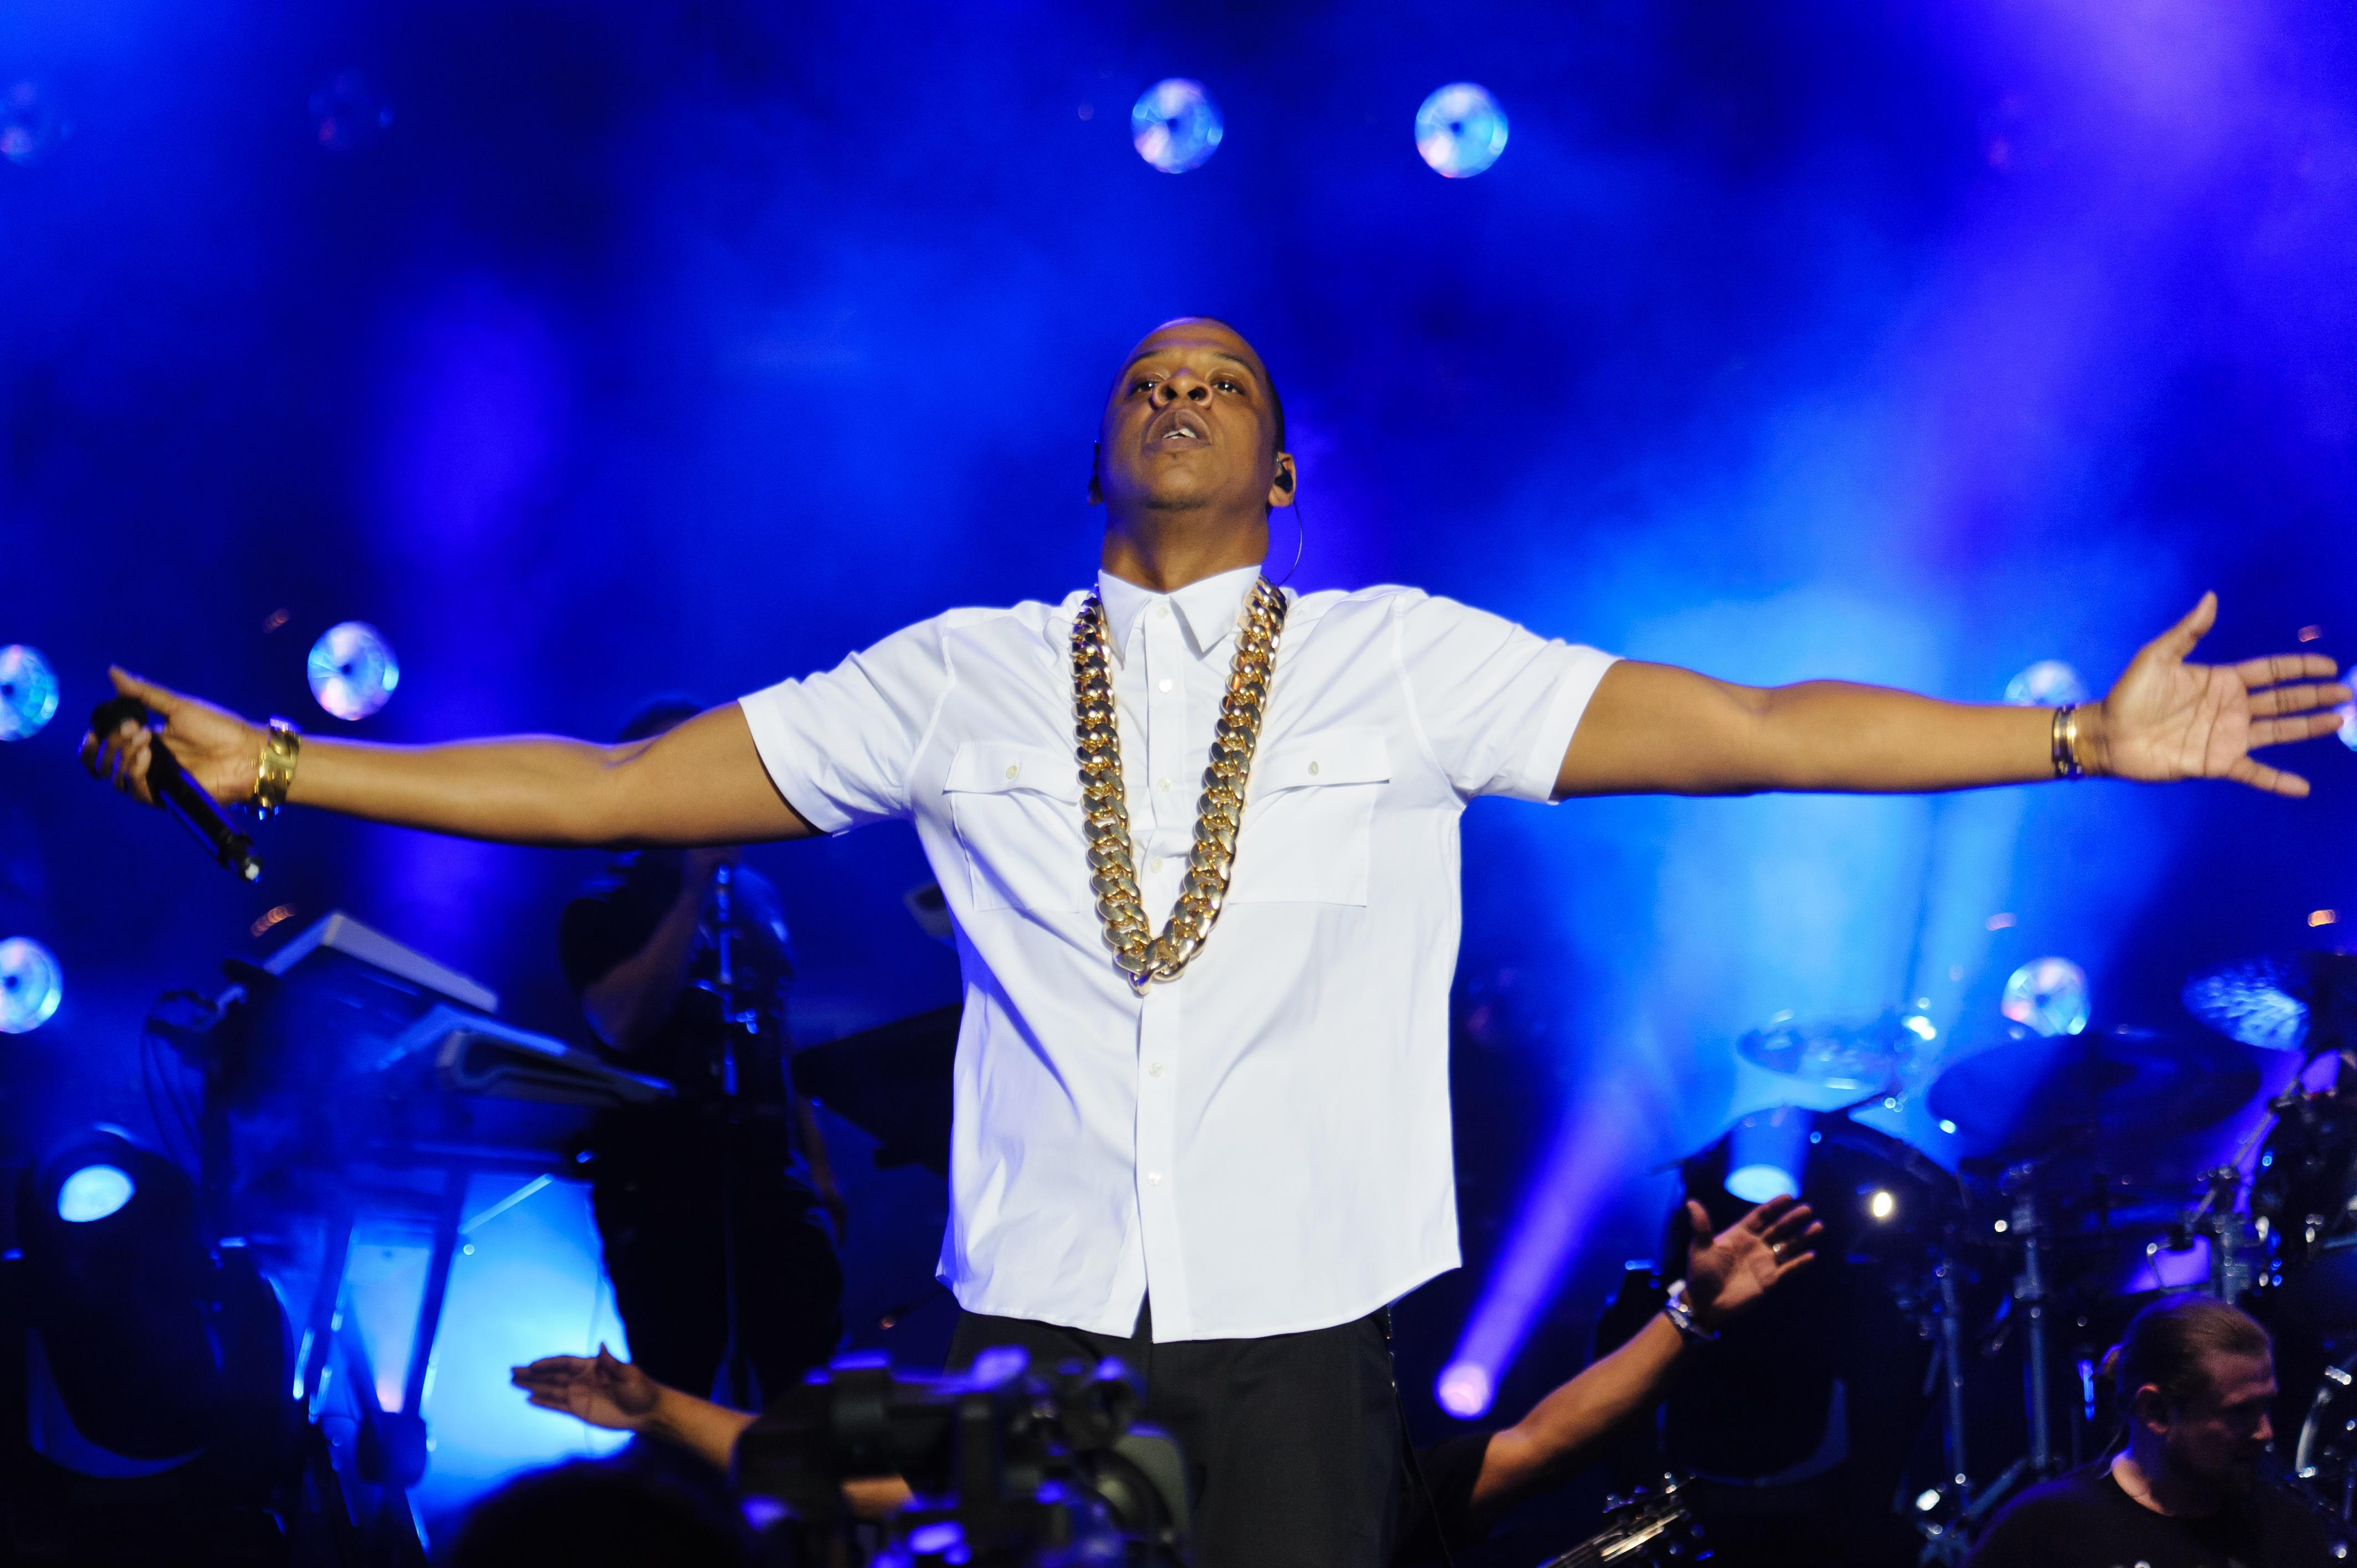 Jay Z has been calling Tidal subscribers personally while CEO bows out